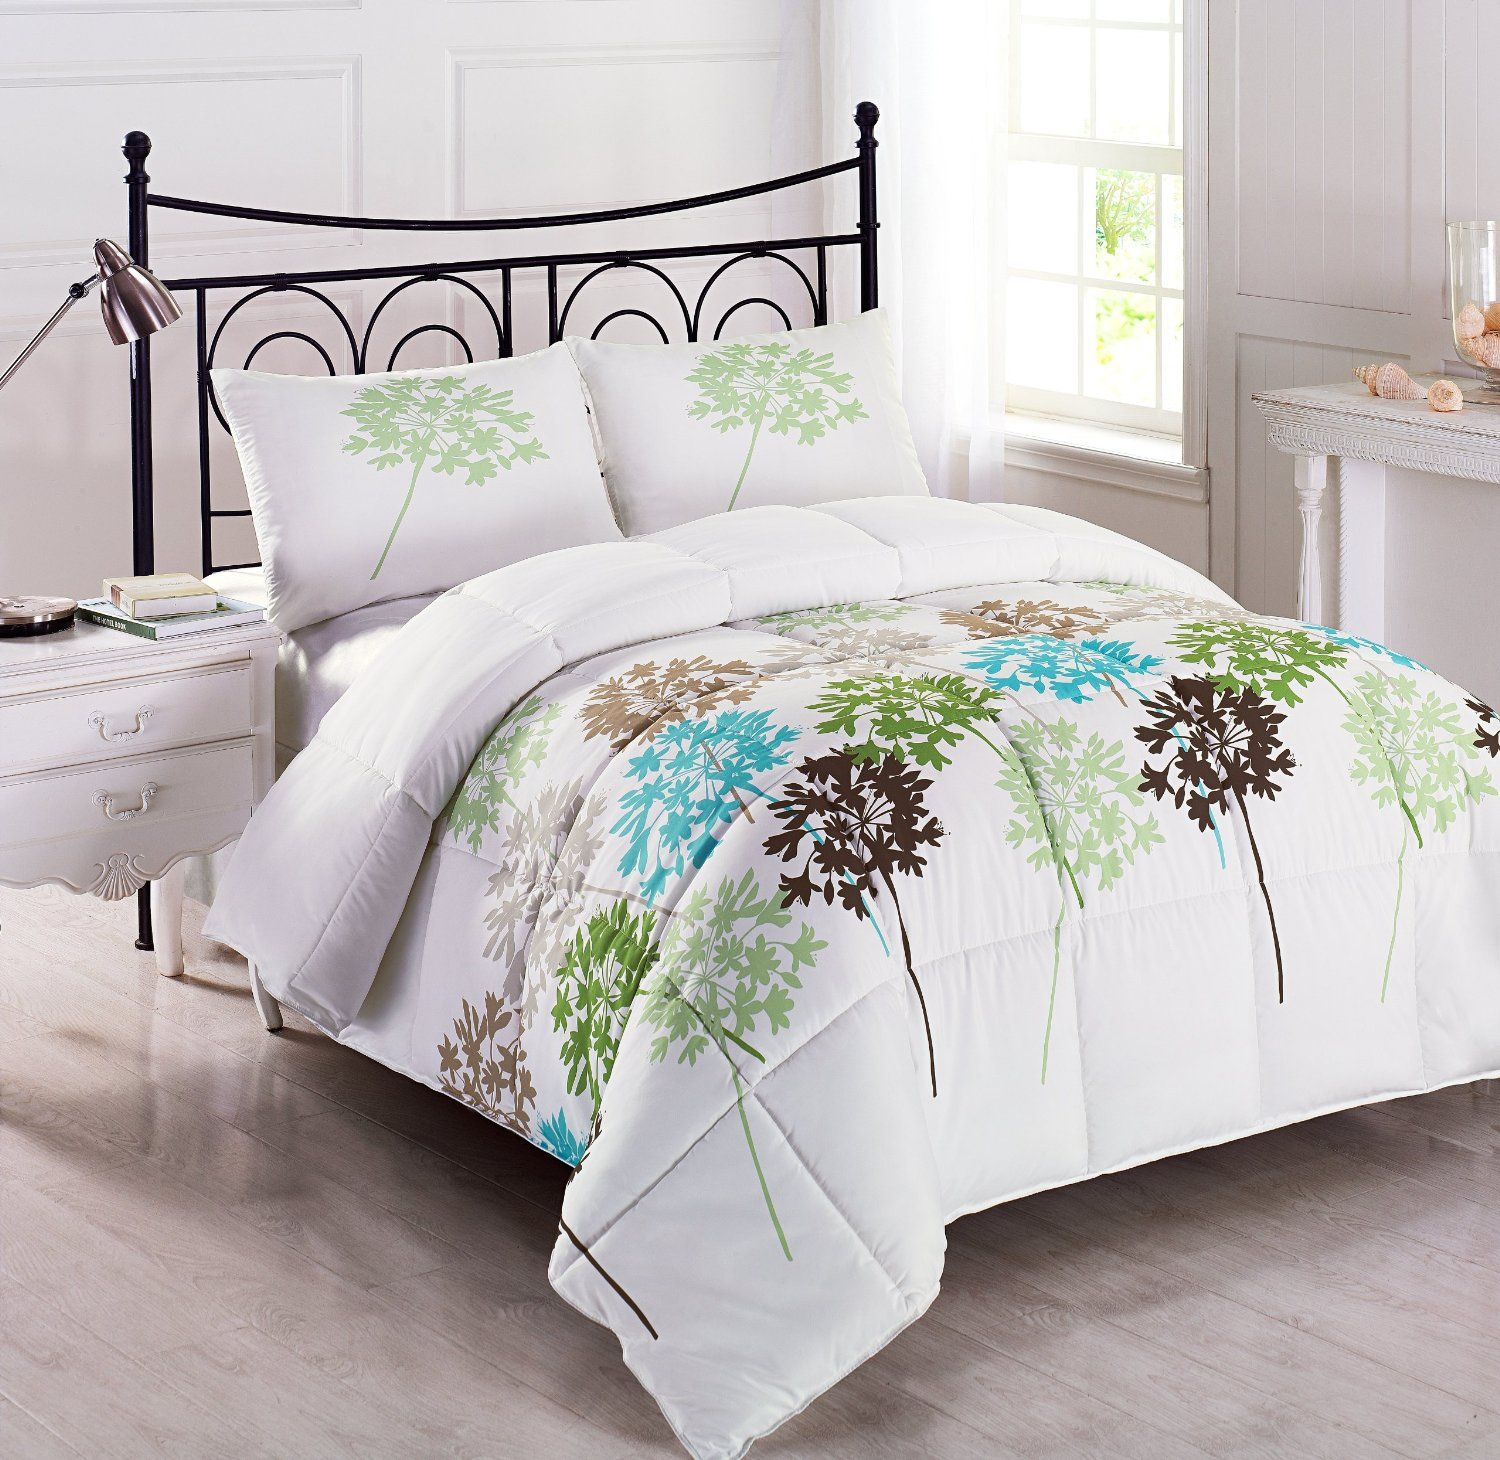 Spring Time Bedding And Comforters Comforter Sets Green Bedding